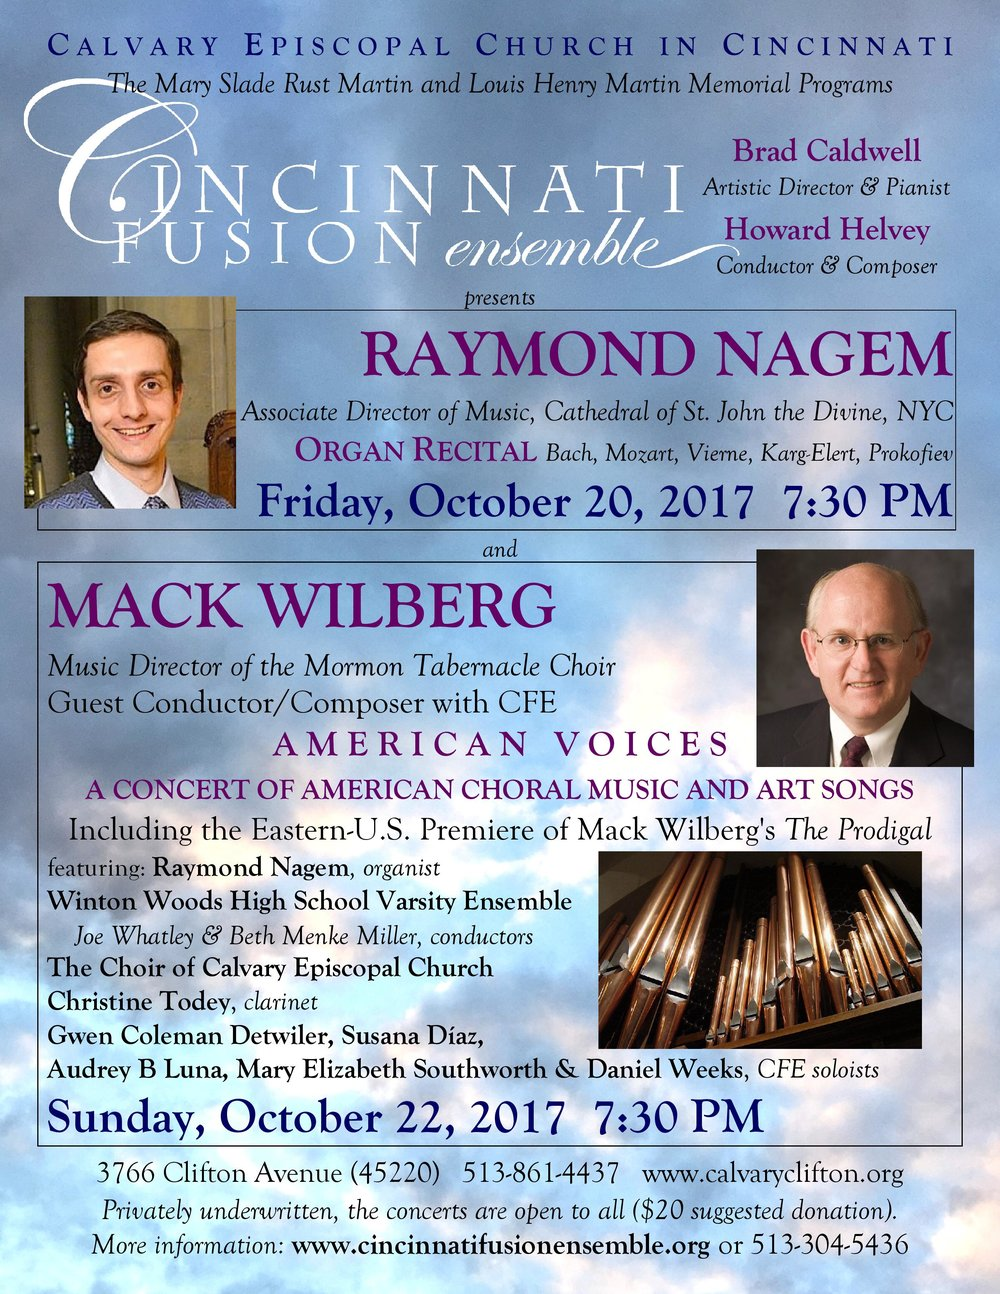 - 7:30 pm each eveningat Calvary Episcopal Church3766 Clifton Ave, Cincinnati, 45220Read about Raymond Nagem and Mack Wilberg.